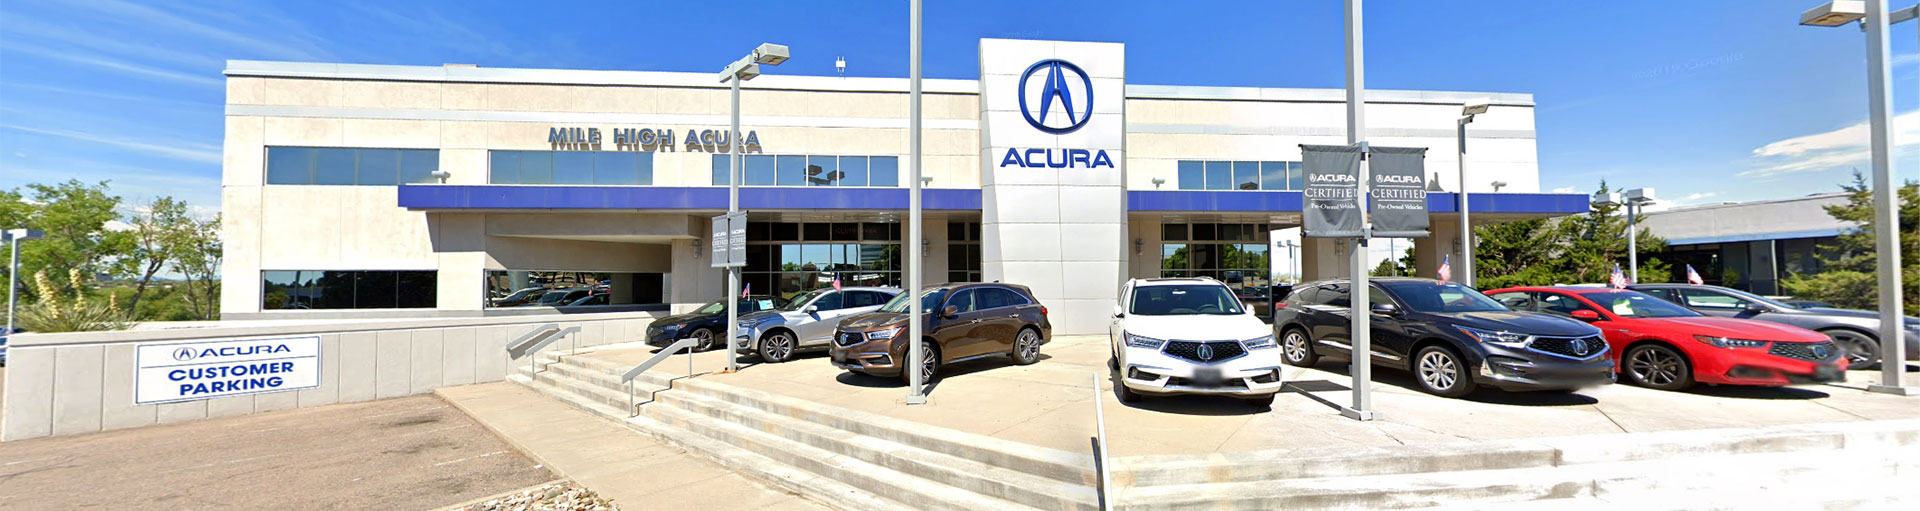 Mile High Acura Dealership & Service Center